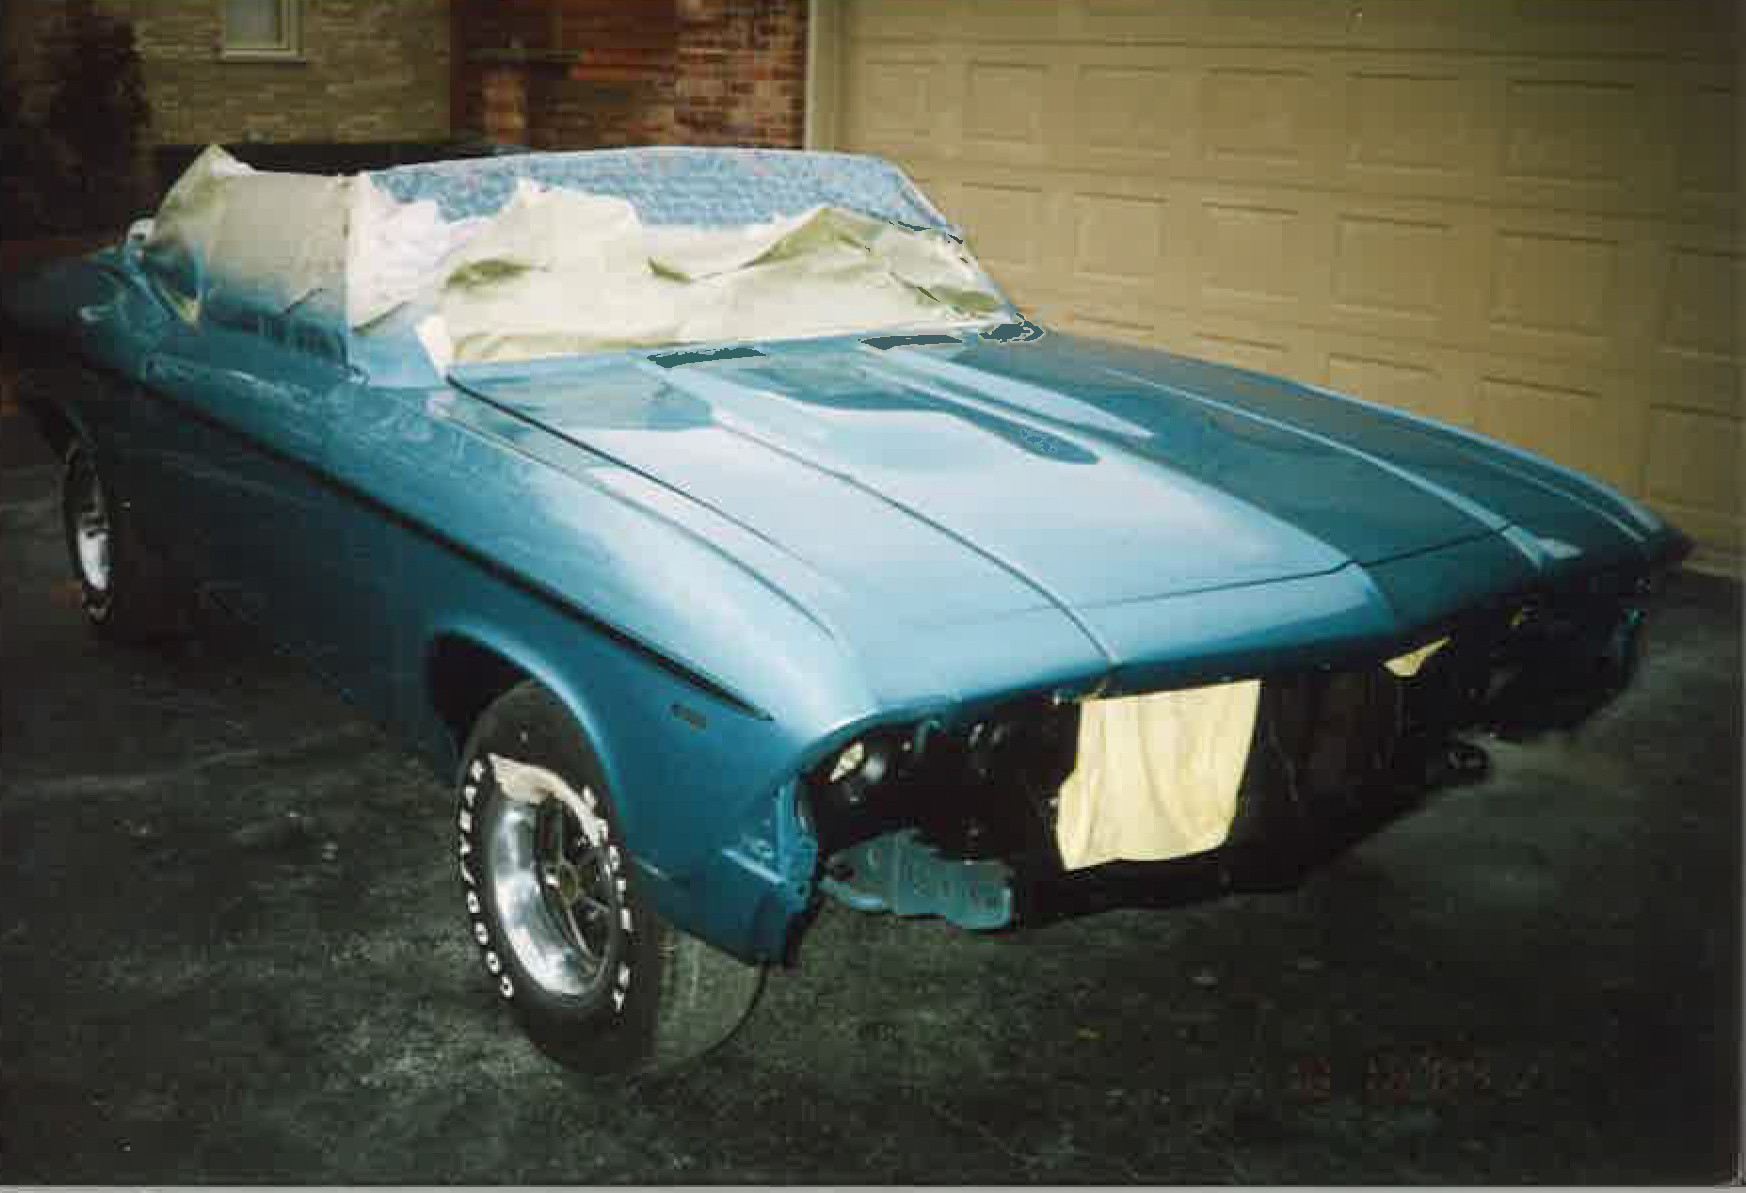 1969 Chevelle SS396 Convertible (during restoration)